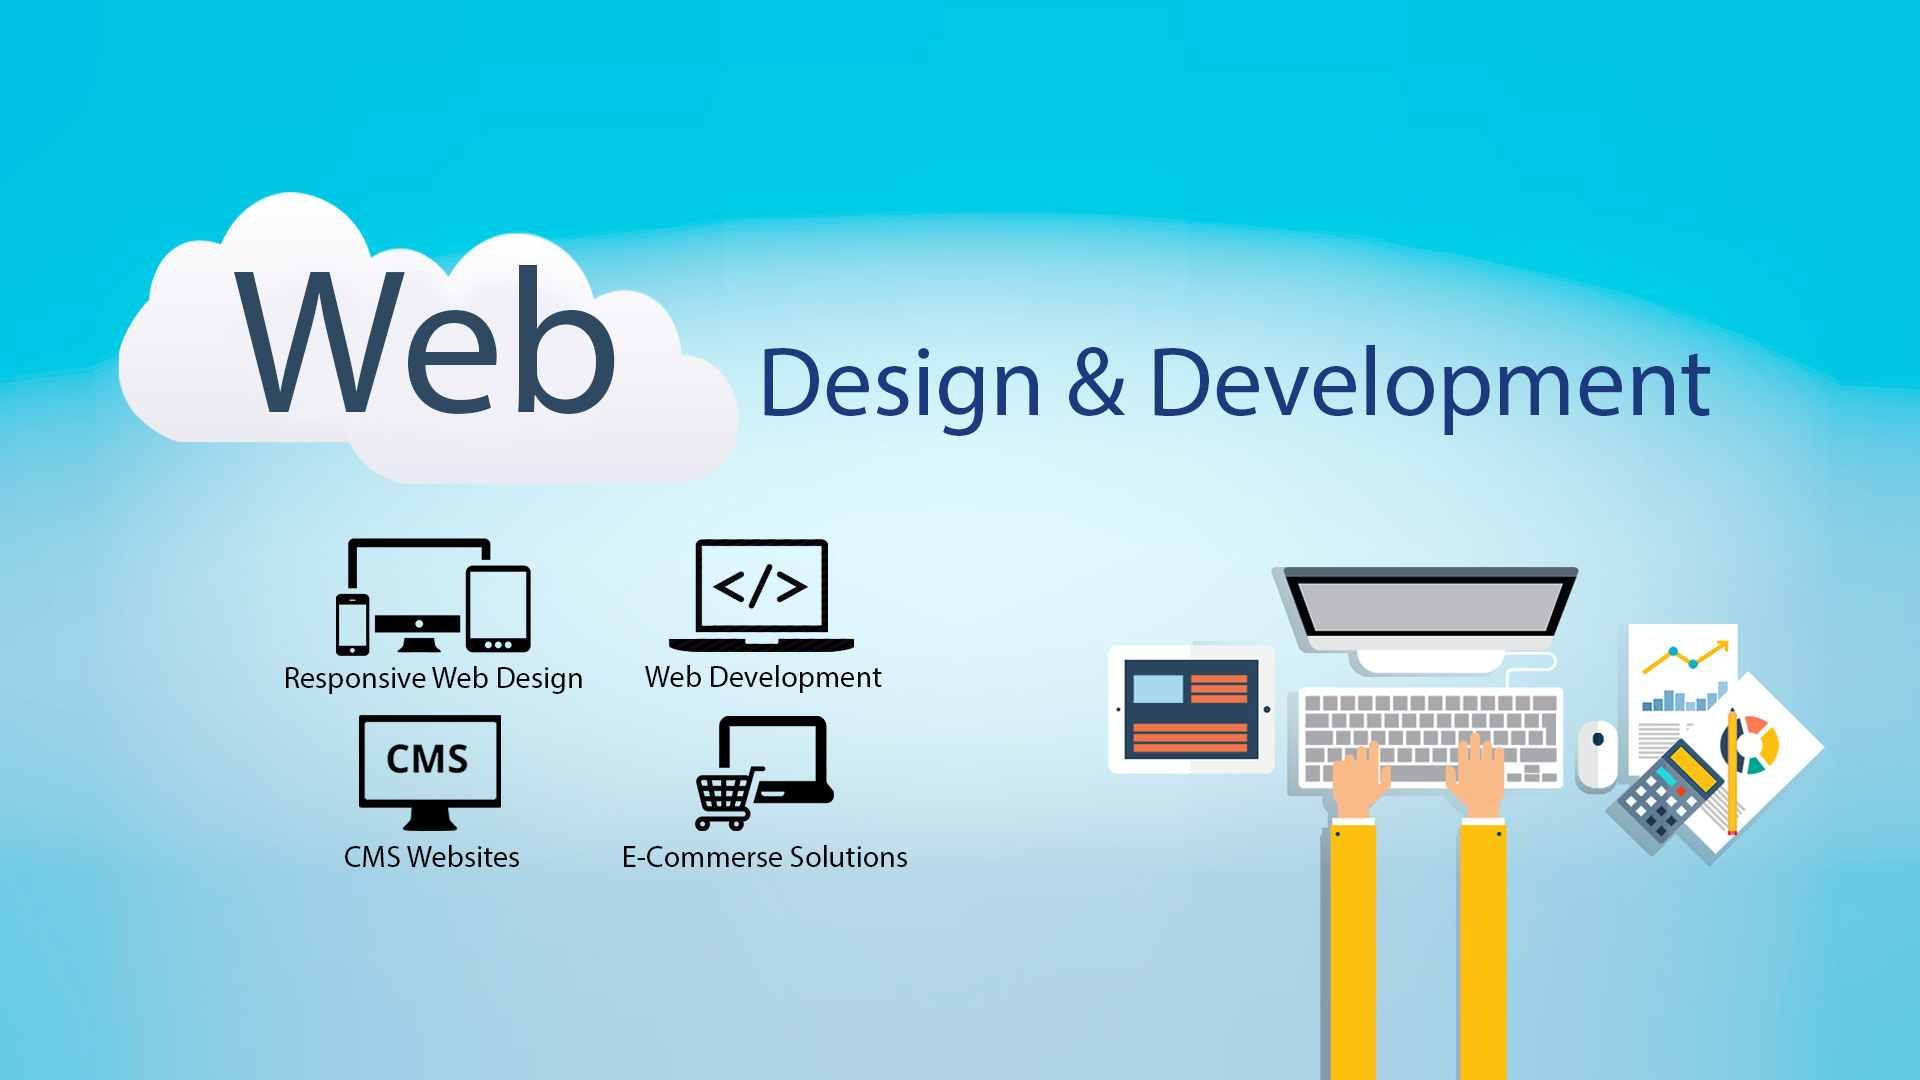 Why You Need an Effective Web Design Agency